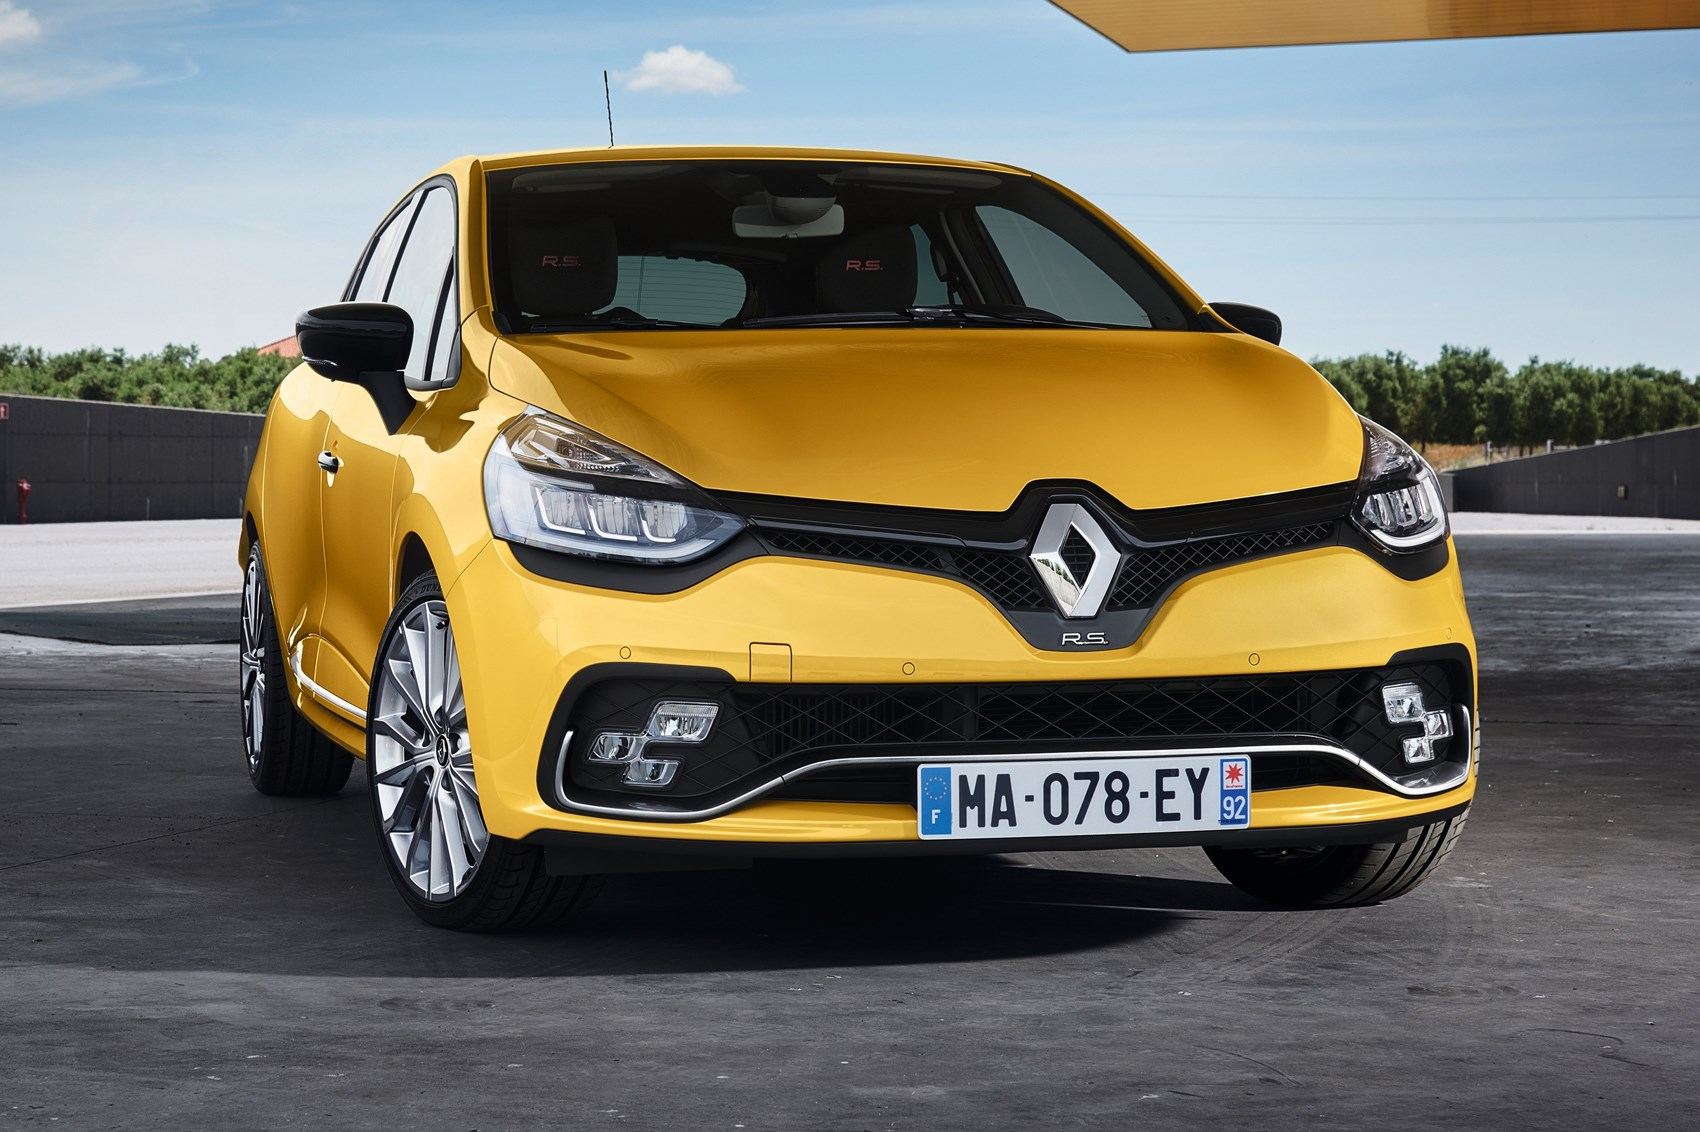 Renaultsport Clio Rs Gets More Lightbulbs And A Fancy